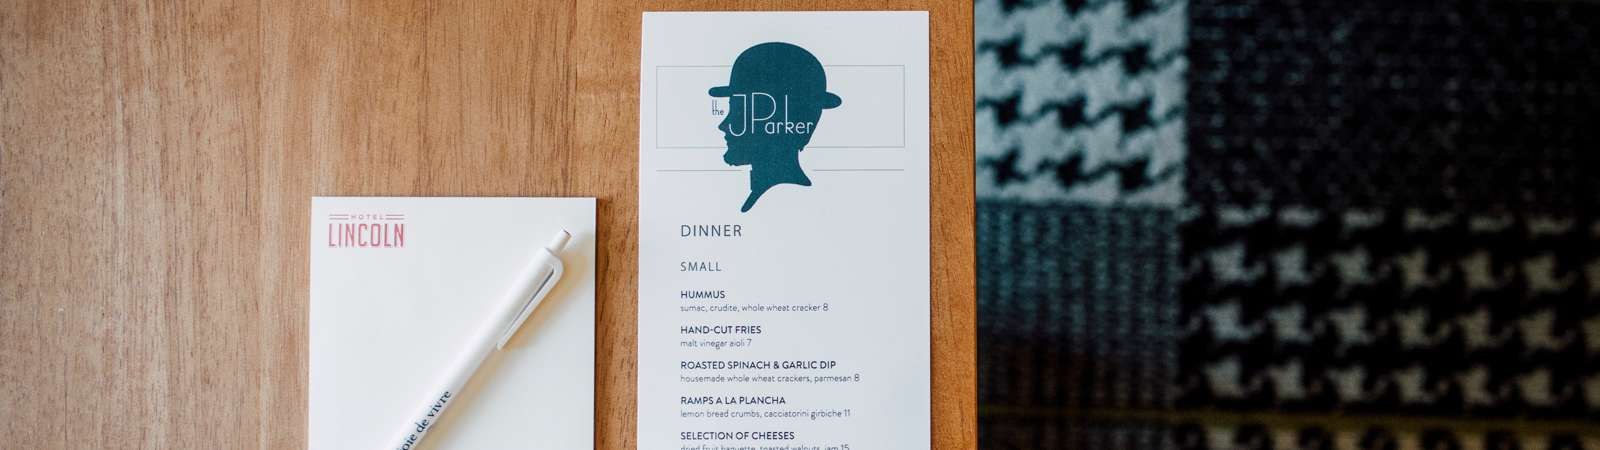 Desk Notepad Menu